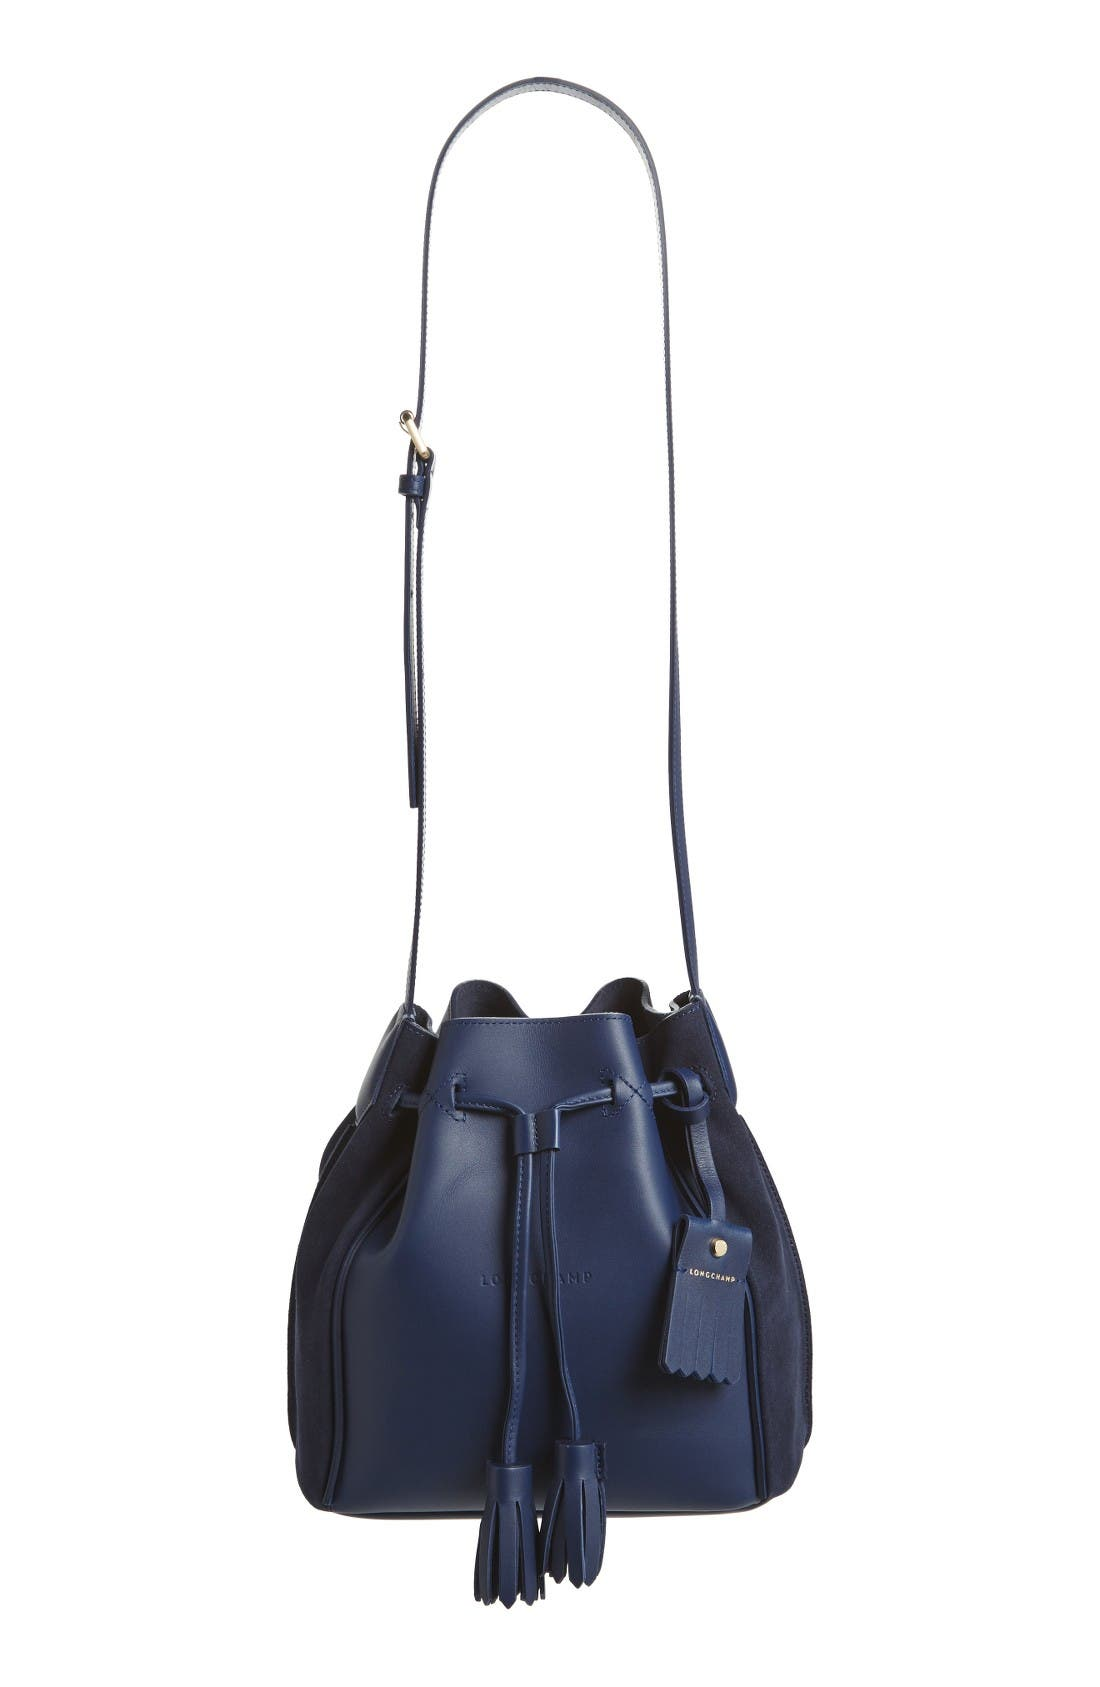 Penelope Fantasie Leather Bucket Bag,                             Main thumbnail 1, color,                             Blue